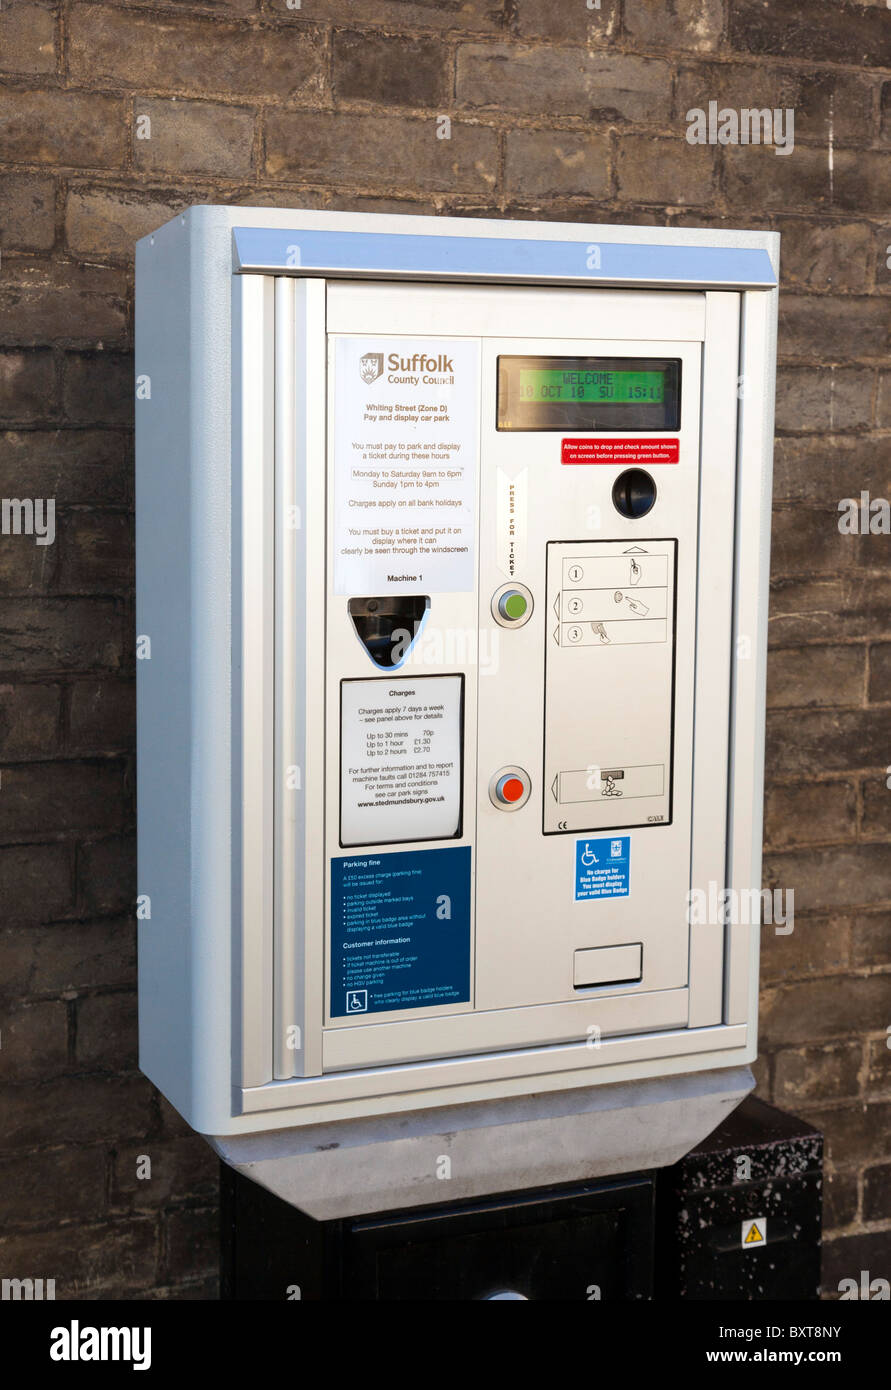 parking ticket machine for pay and display charge - Stock Image